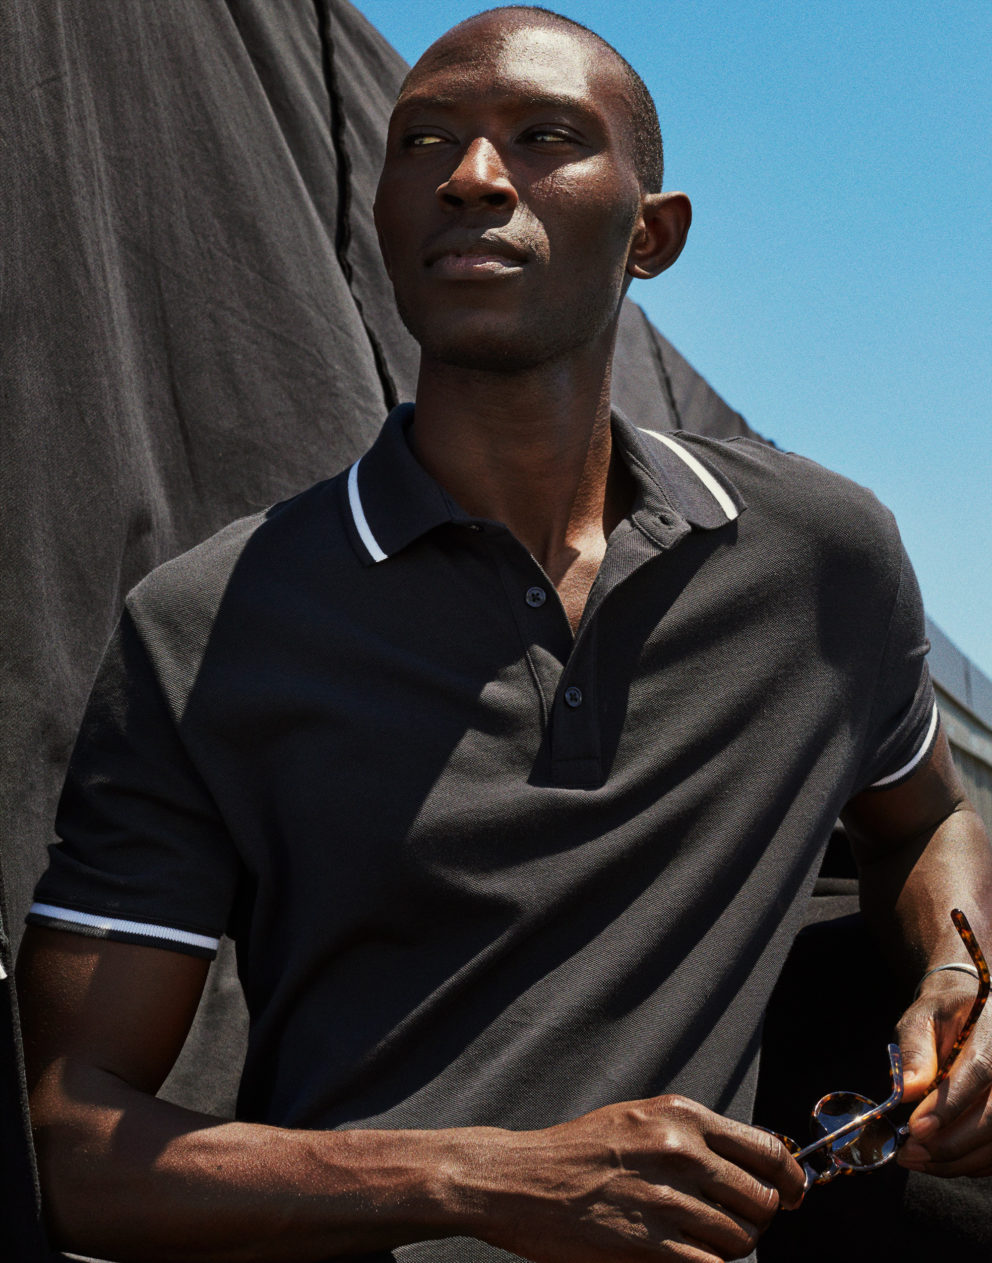 190626 0070 Bonobos Denim And Styleguide Armando Cabral 158